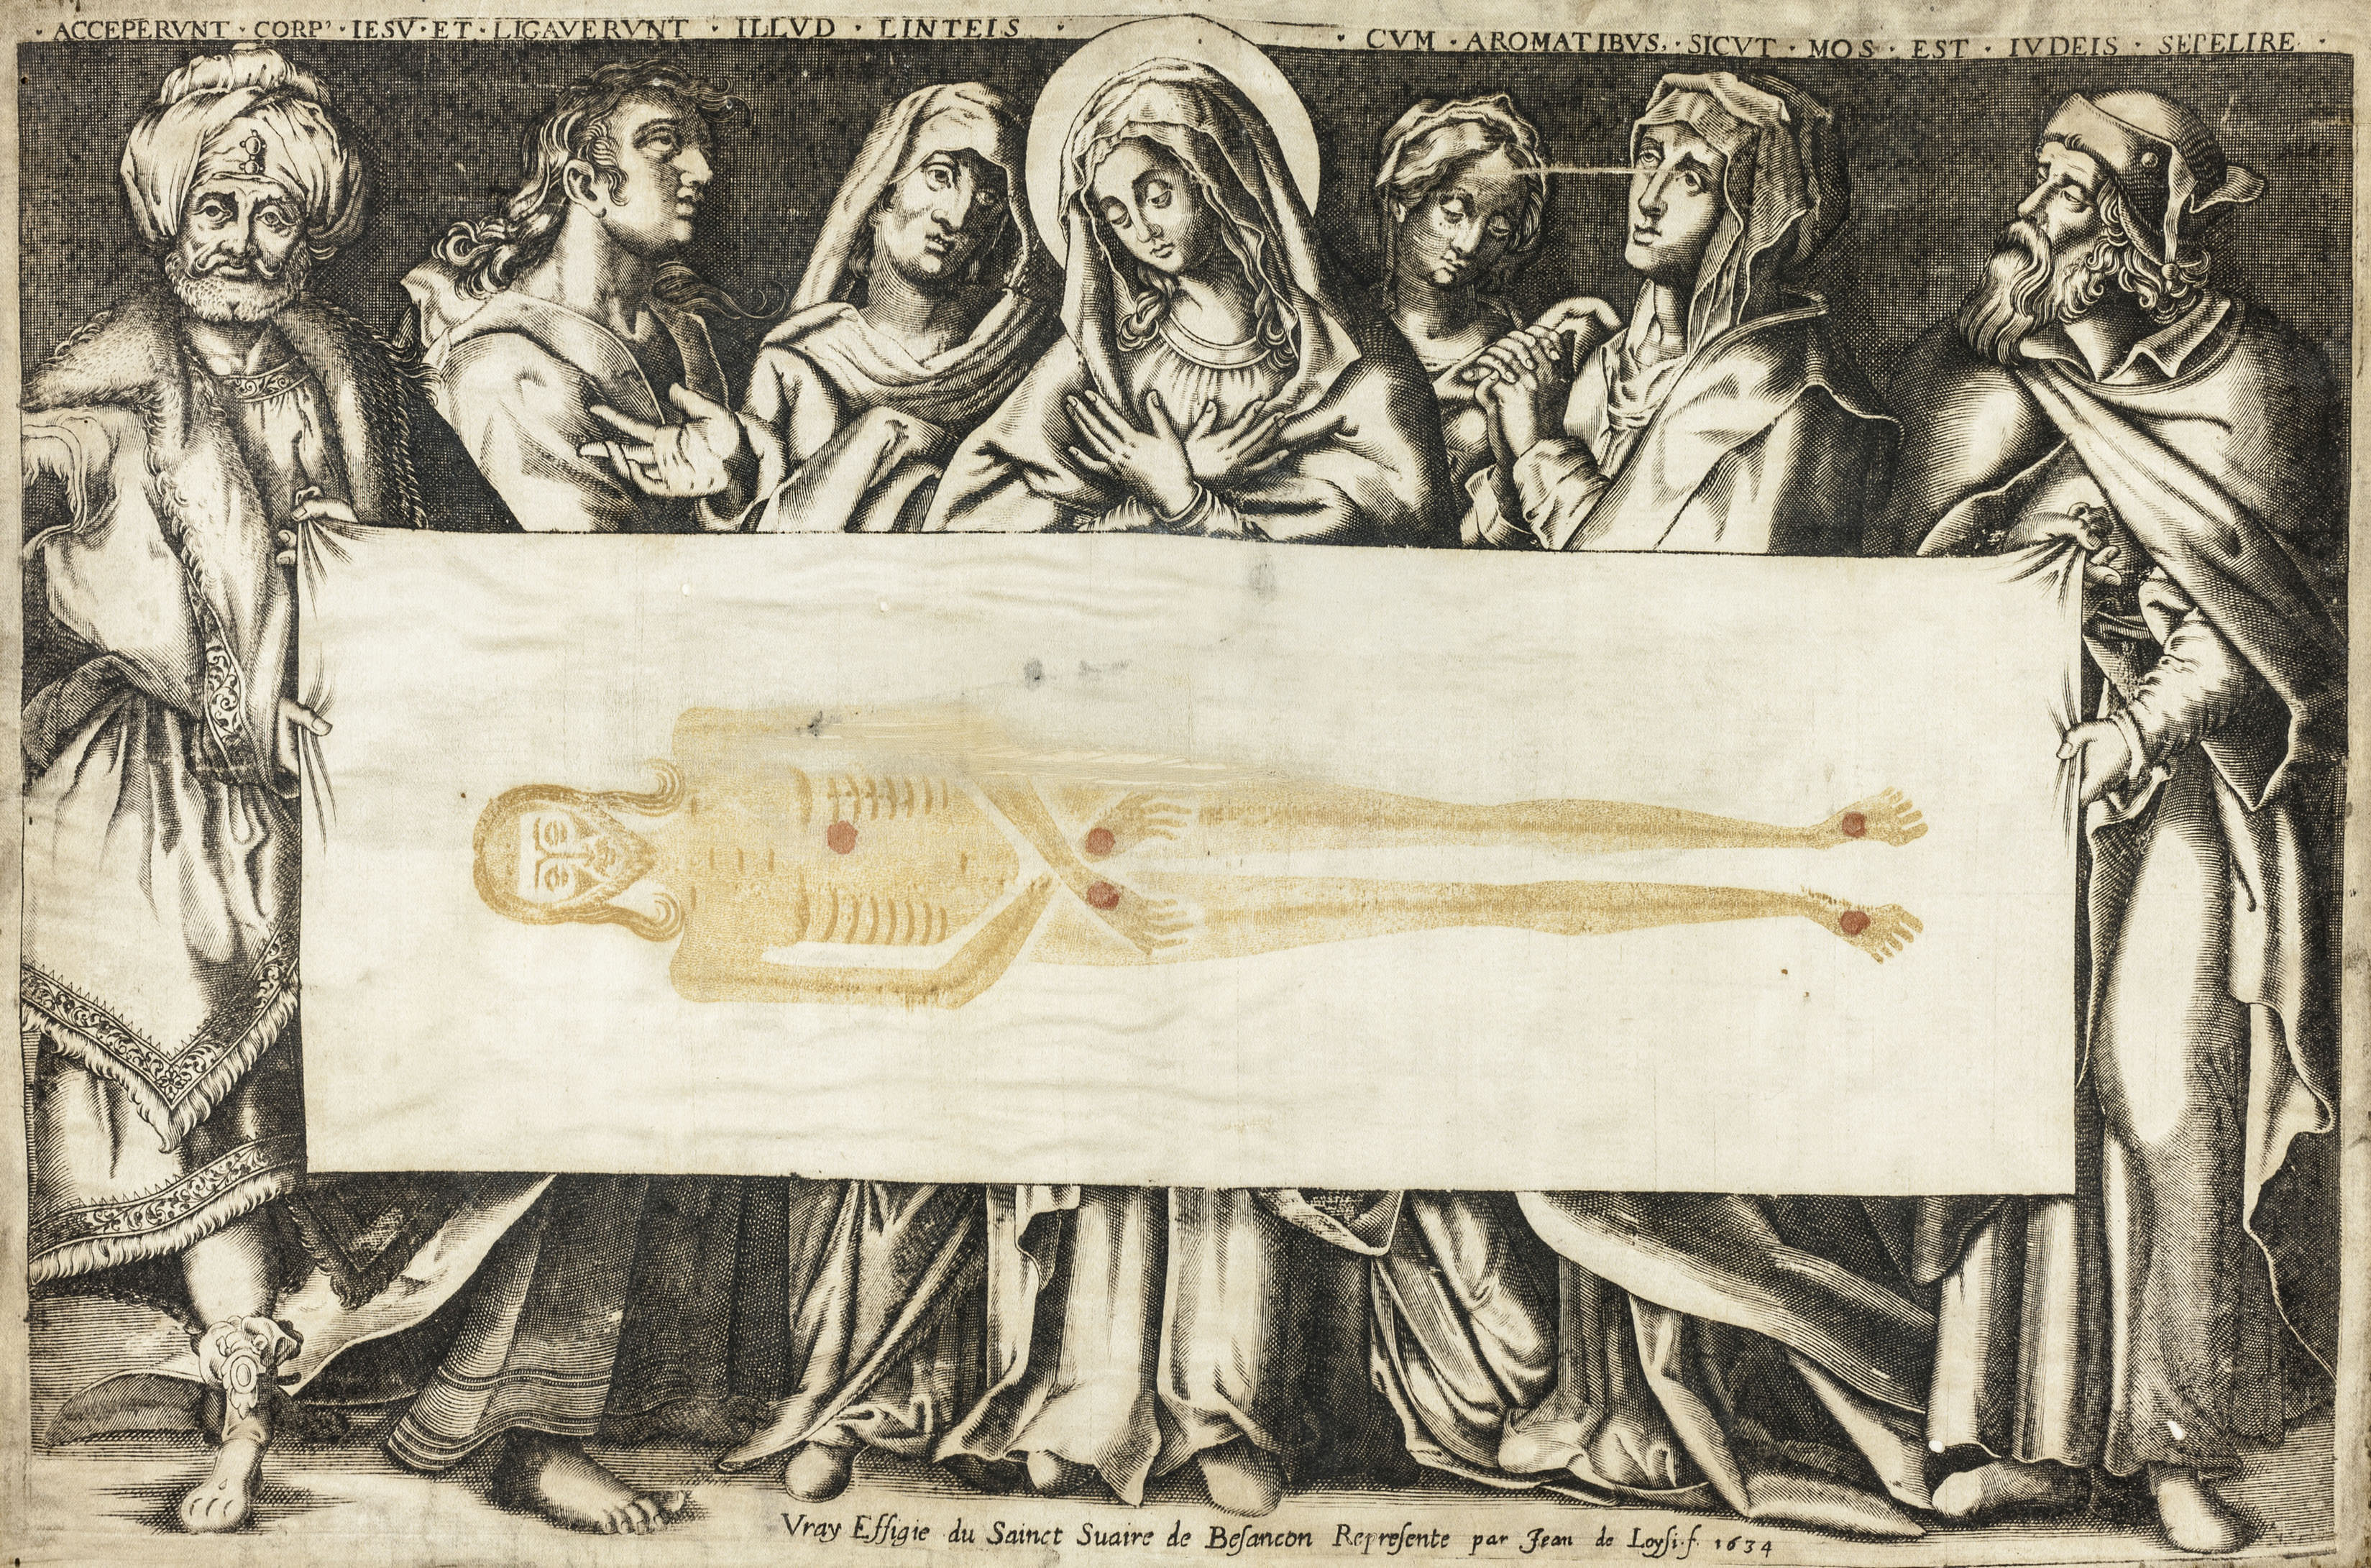 Fig. 1 Jean de Loisy, The Holy Shroud of Besançon, 1634, The Art Institute of Chicago